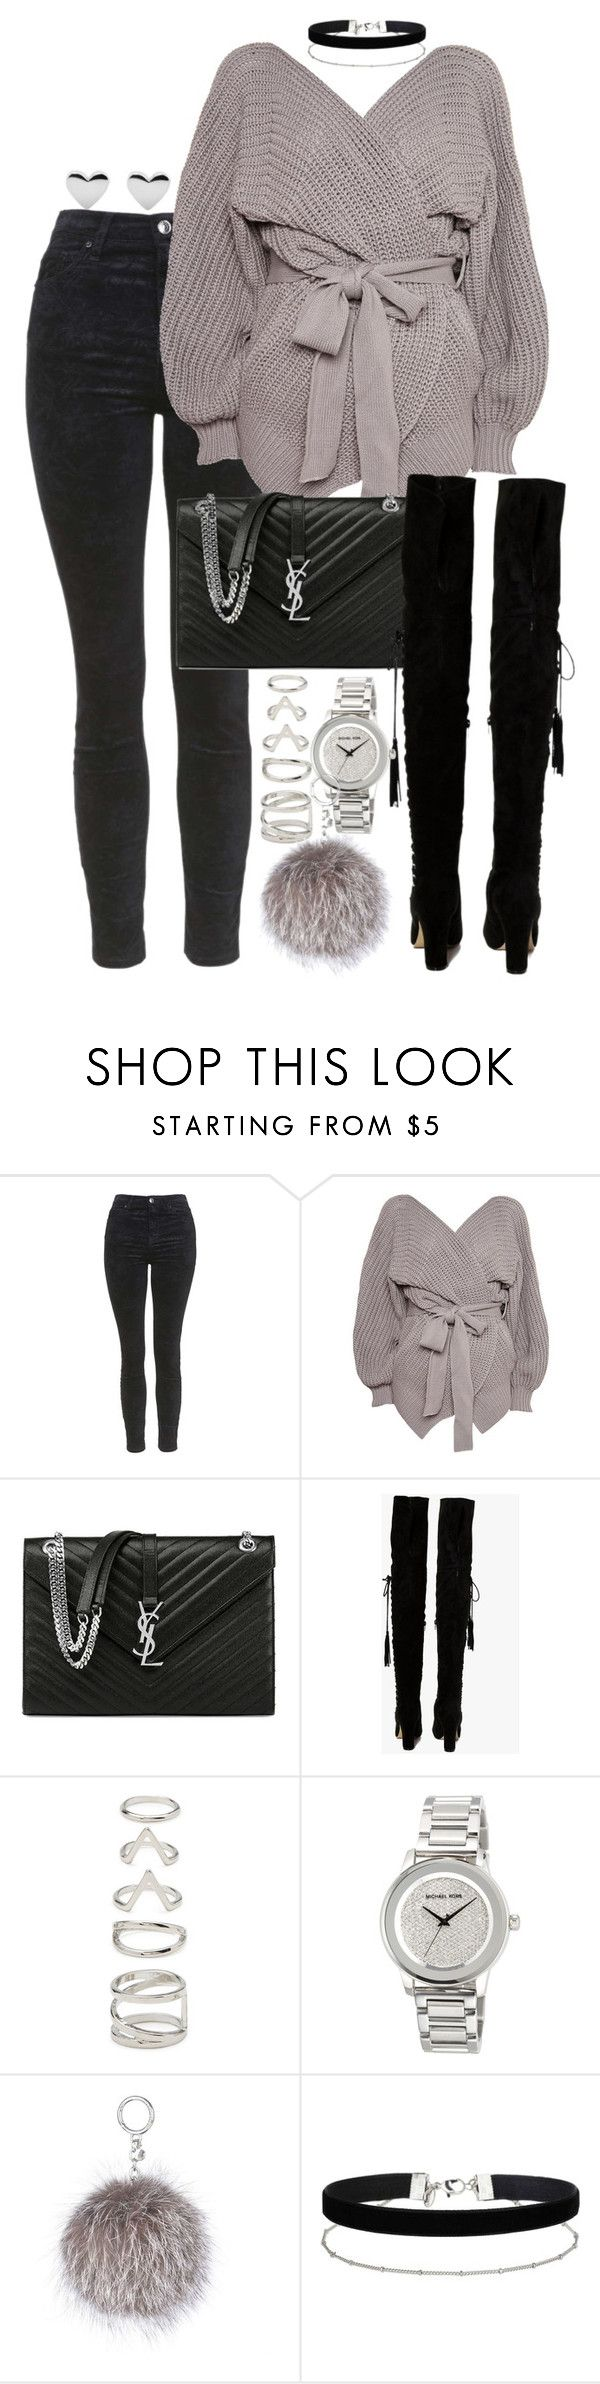 """Untitled #184"" by marinas-clothes ❤ liked on Polyvore featuring Topshop, Yves Saint Laurent, Boohoo, Forever 21, MICHAEL Michael Kors and Miss Selfridge"